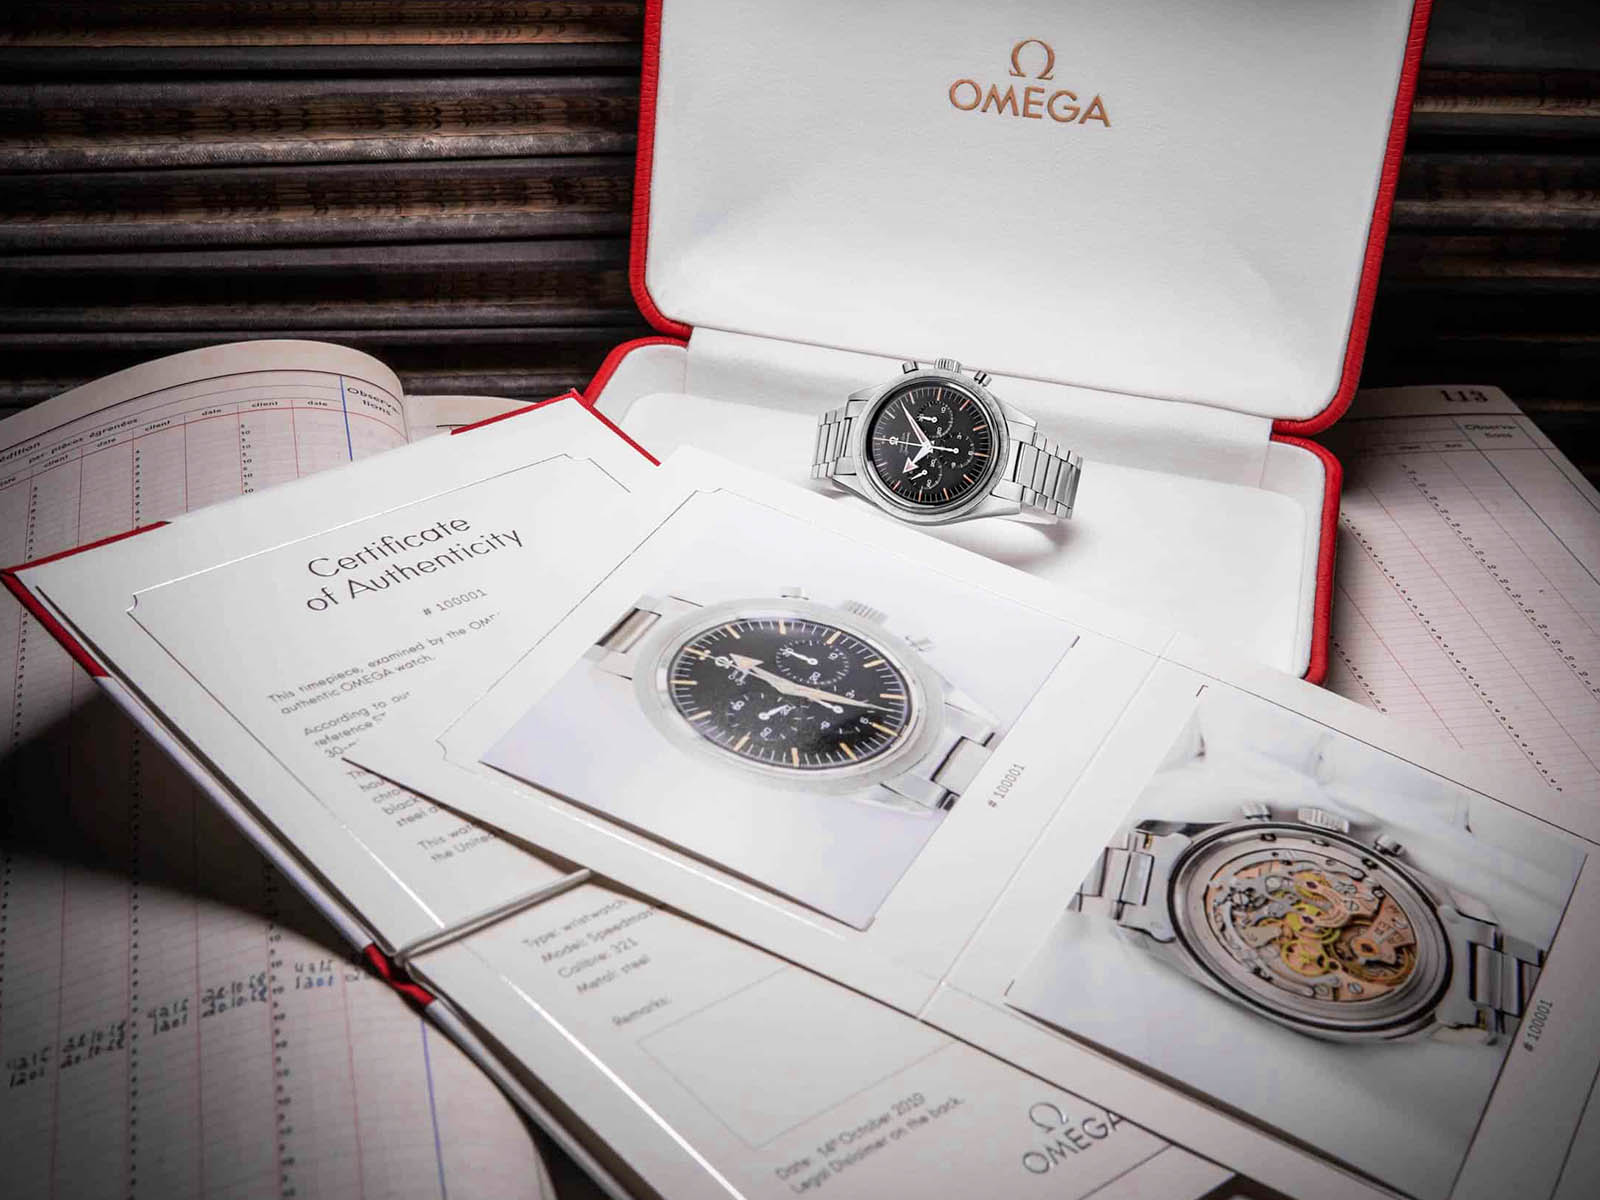 omega-certificate-of-authenticity-2.jpg